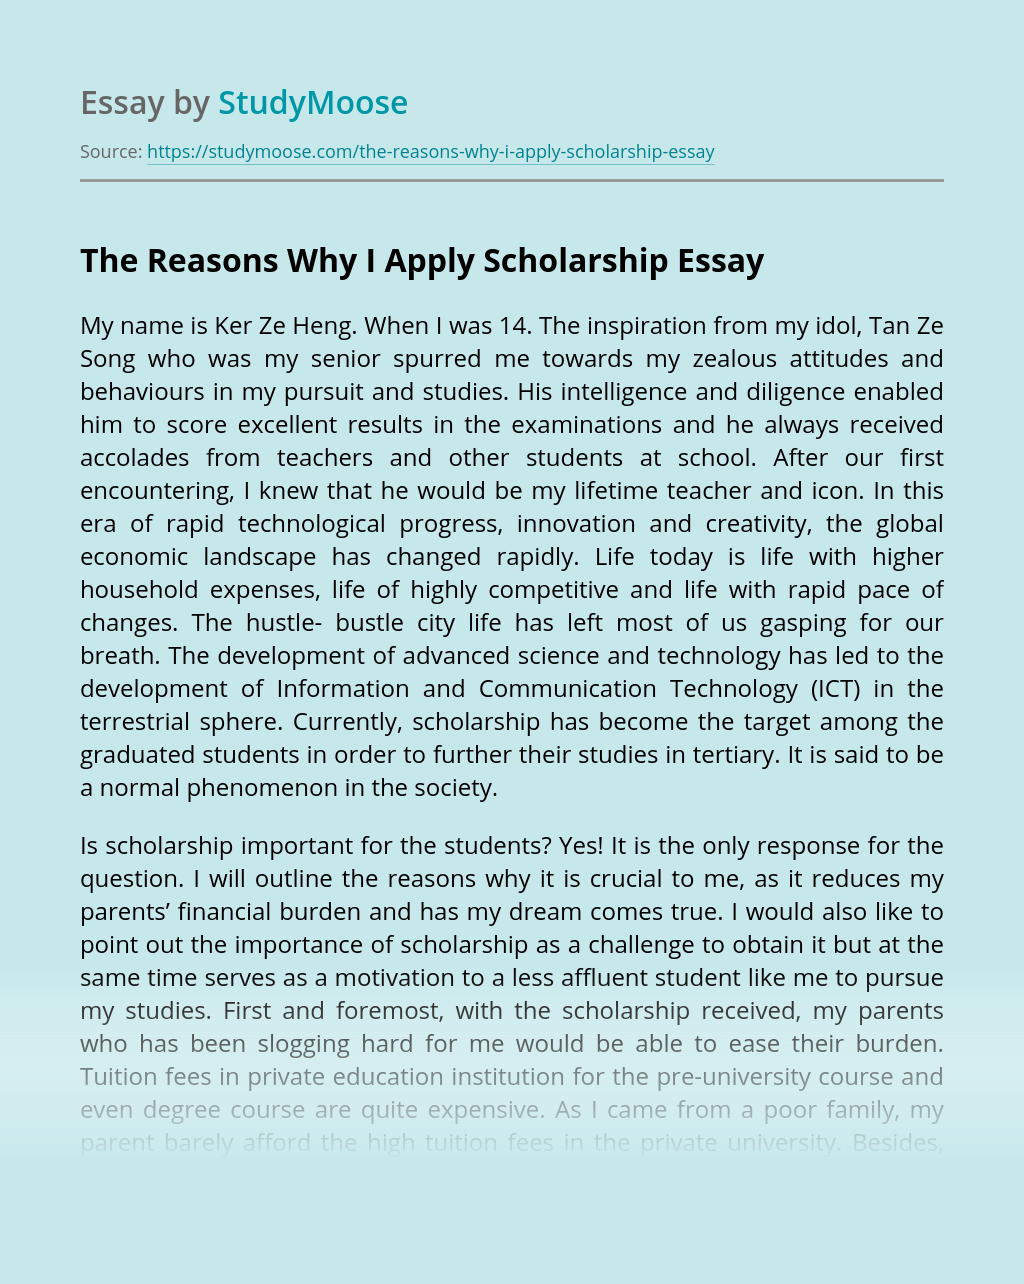 The Reasons Why I Apply Scholarship